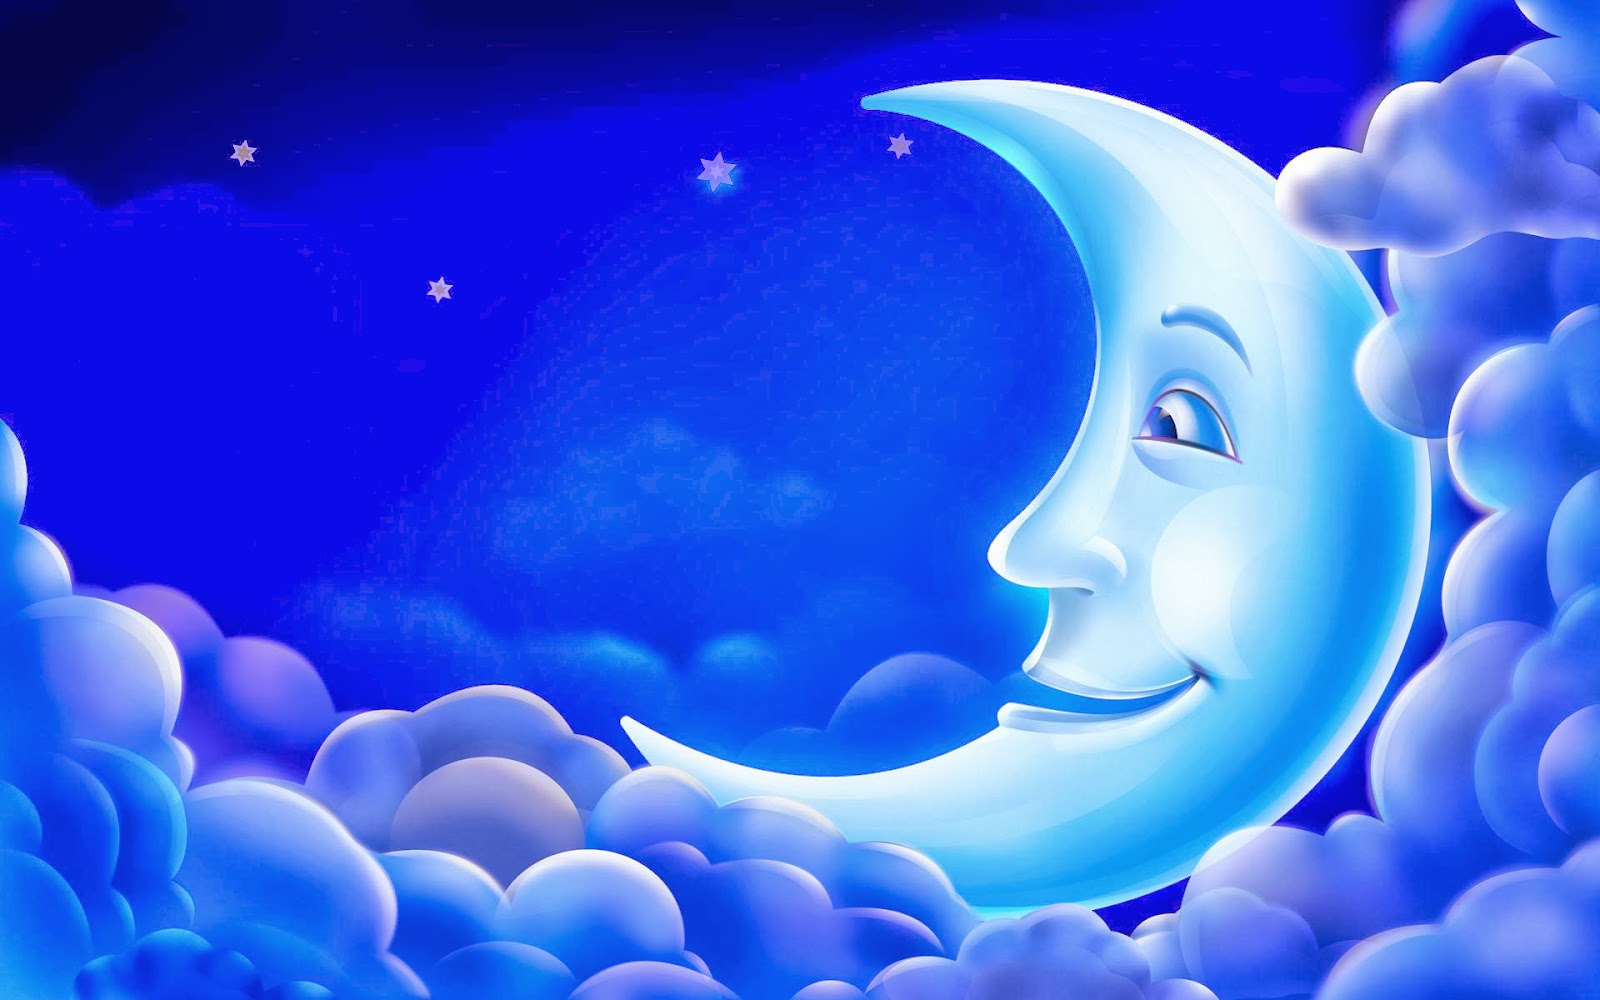 Cartoon Sky with Moon